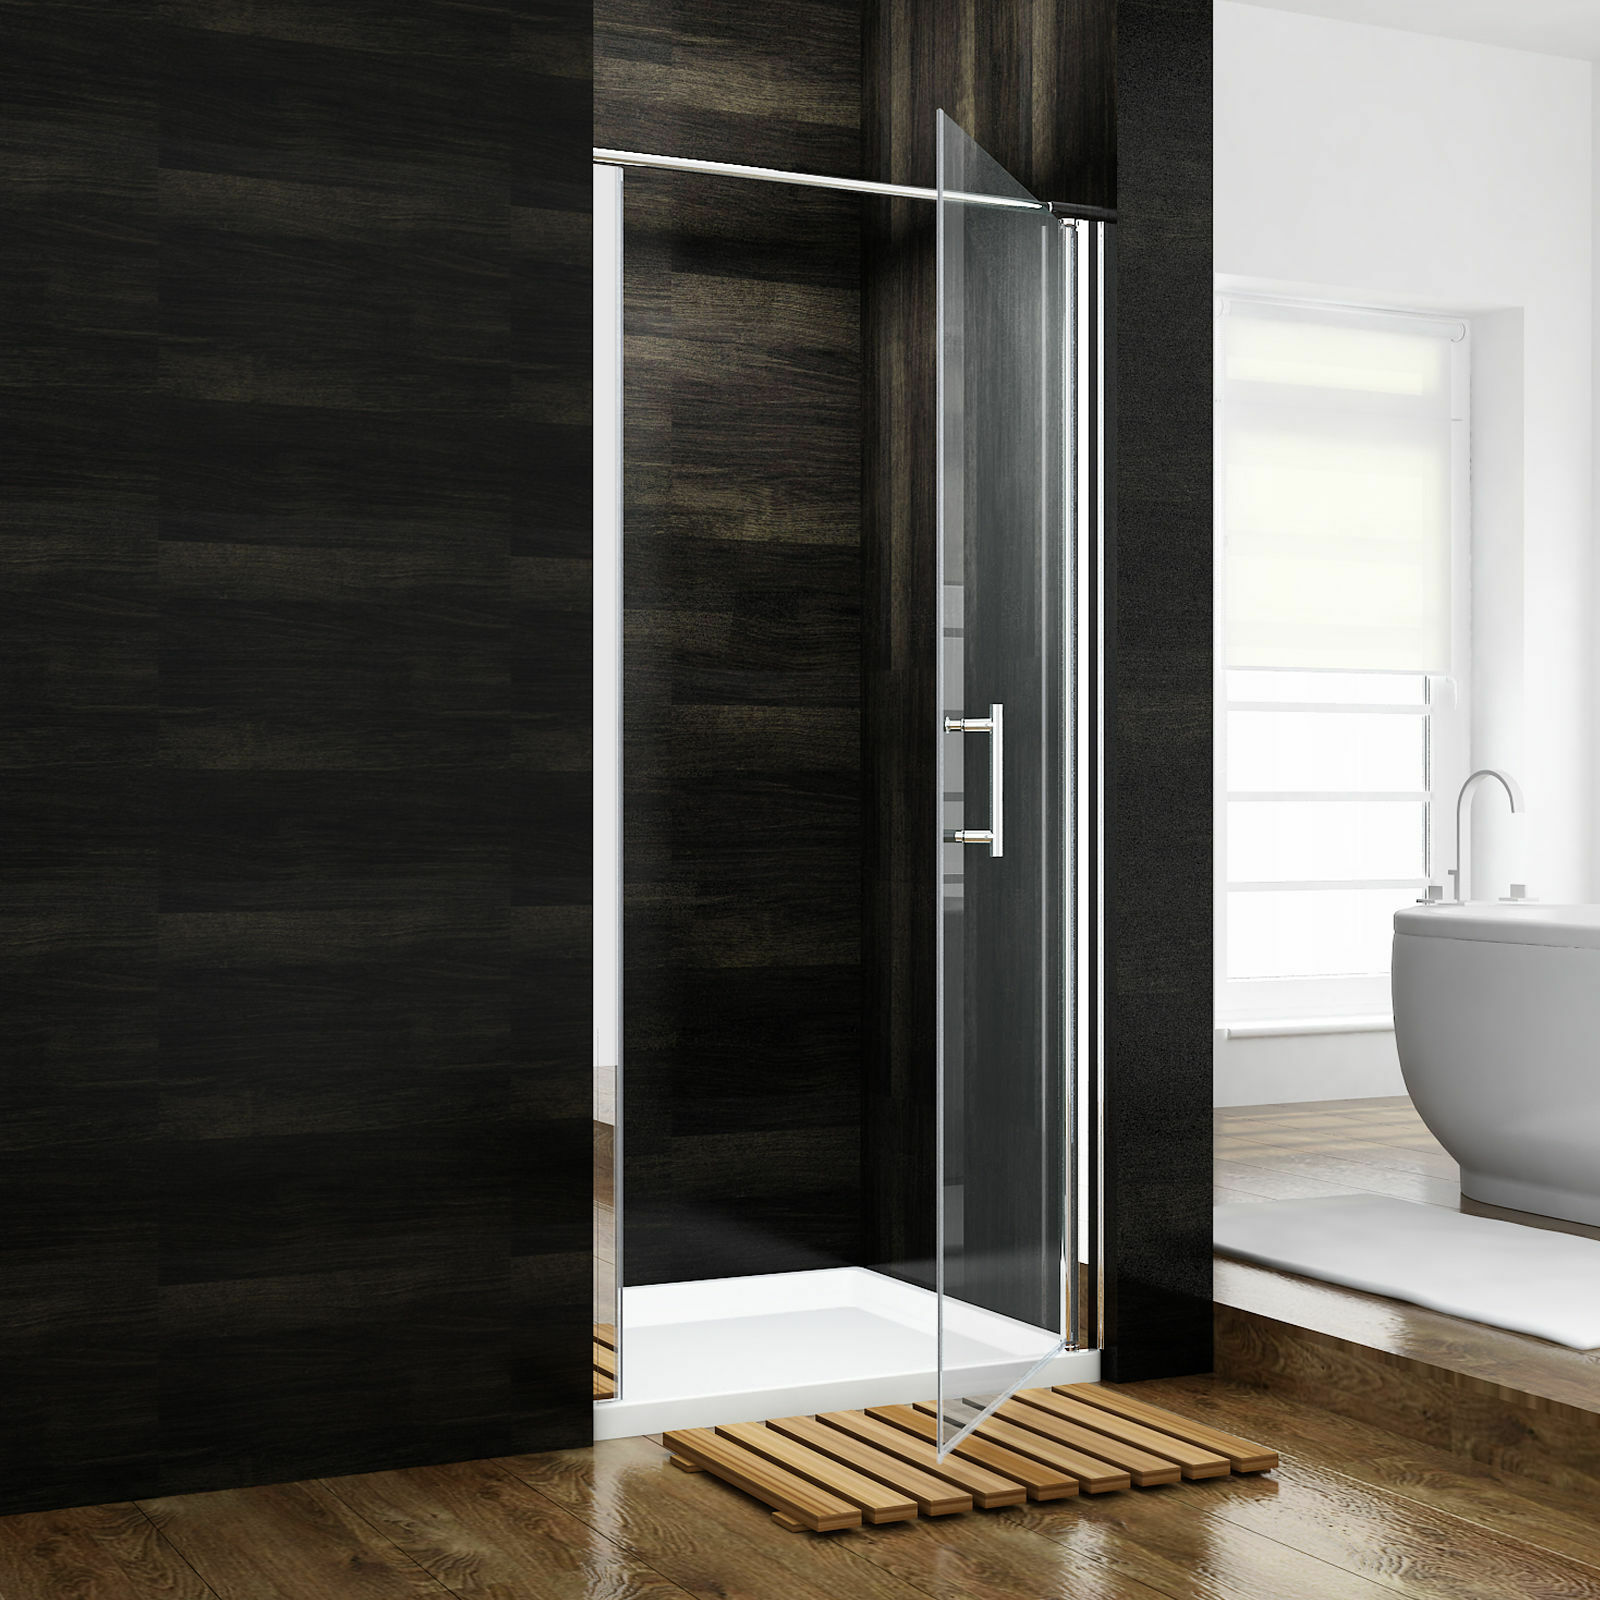 Sunny Shower 31 1 4x72 In Semi Frameless Glass Pivot Shower Door Chrome Finish